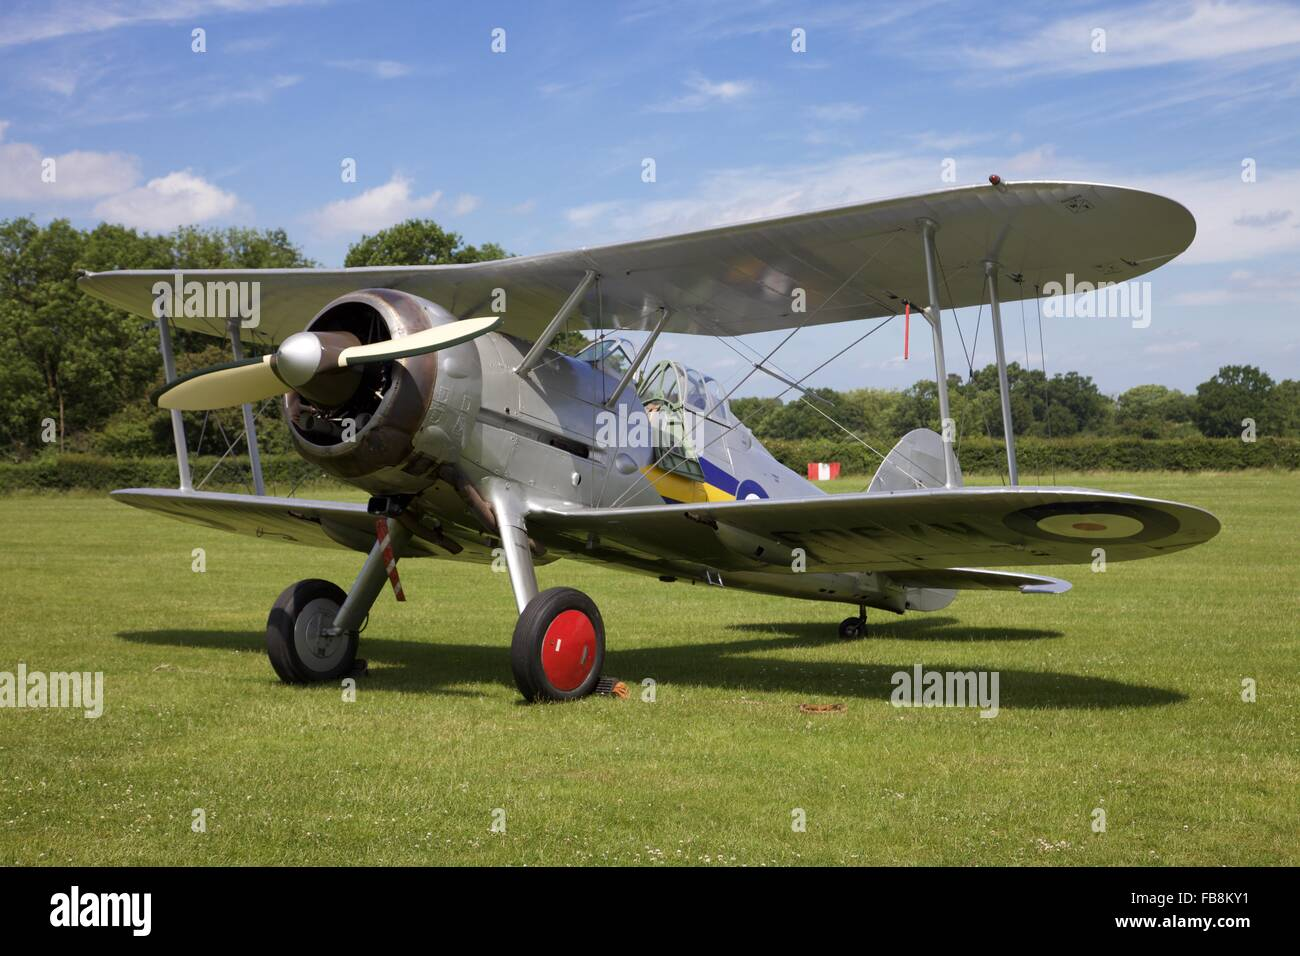 A 1935 Hawker Hind light bomber - Stock Image